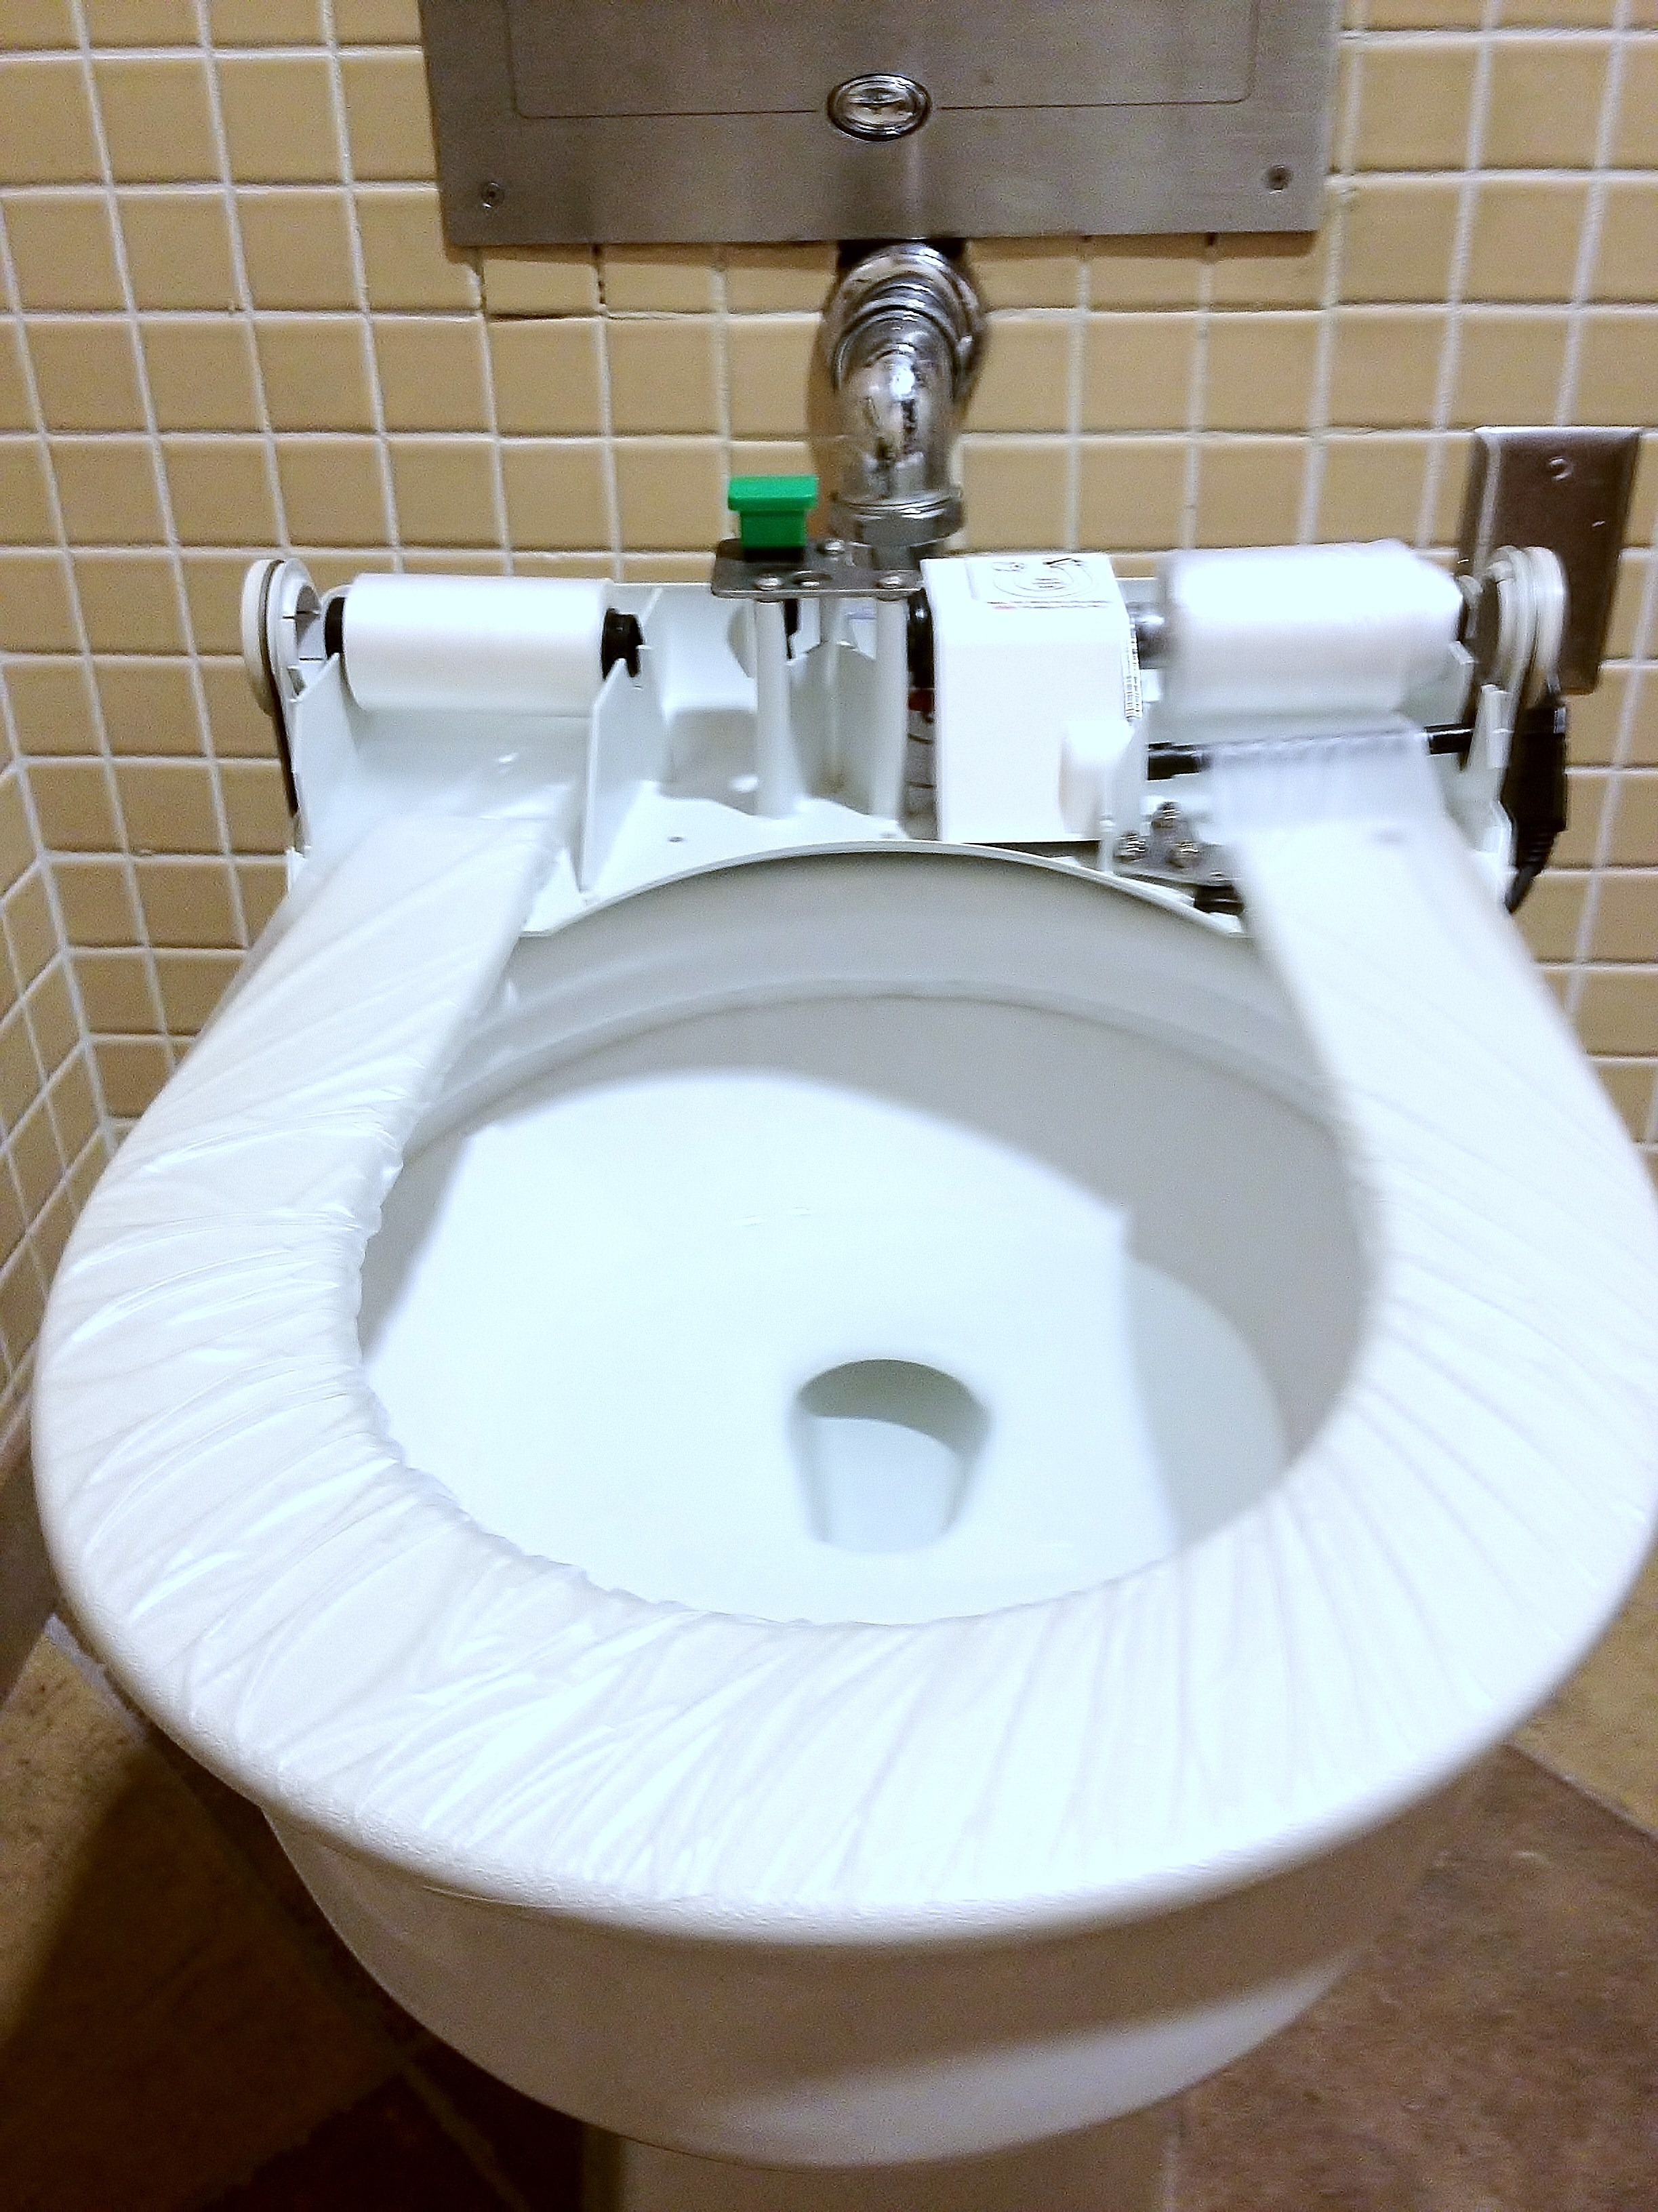 How Are You Supposed to Use a Toilet Seat Cover Where